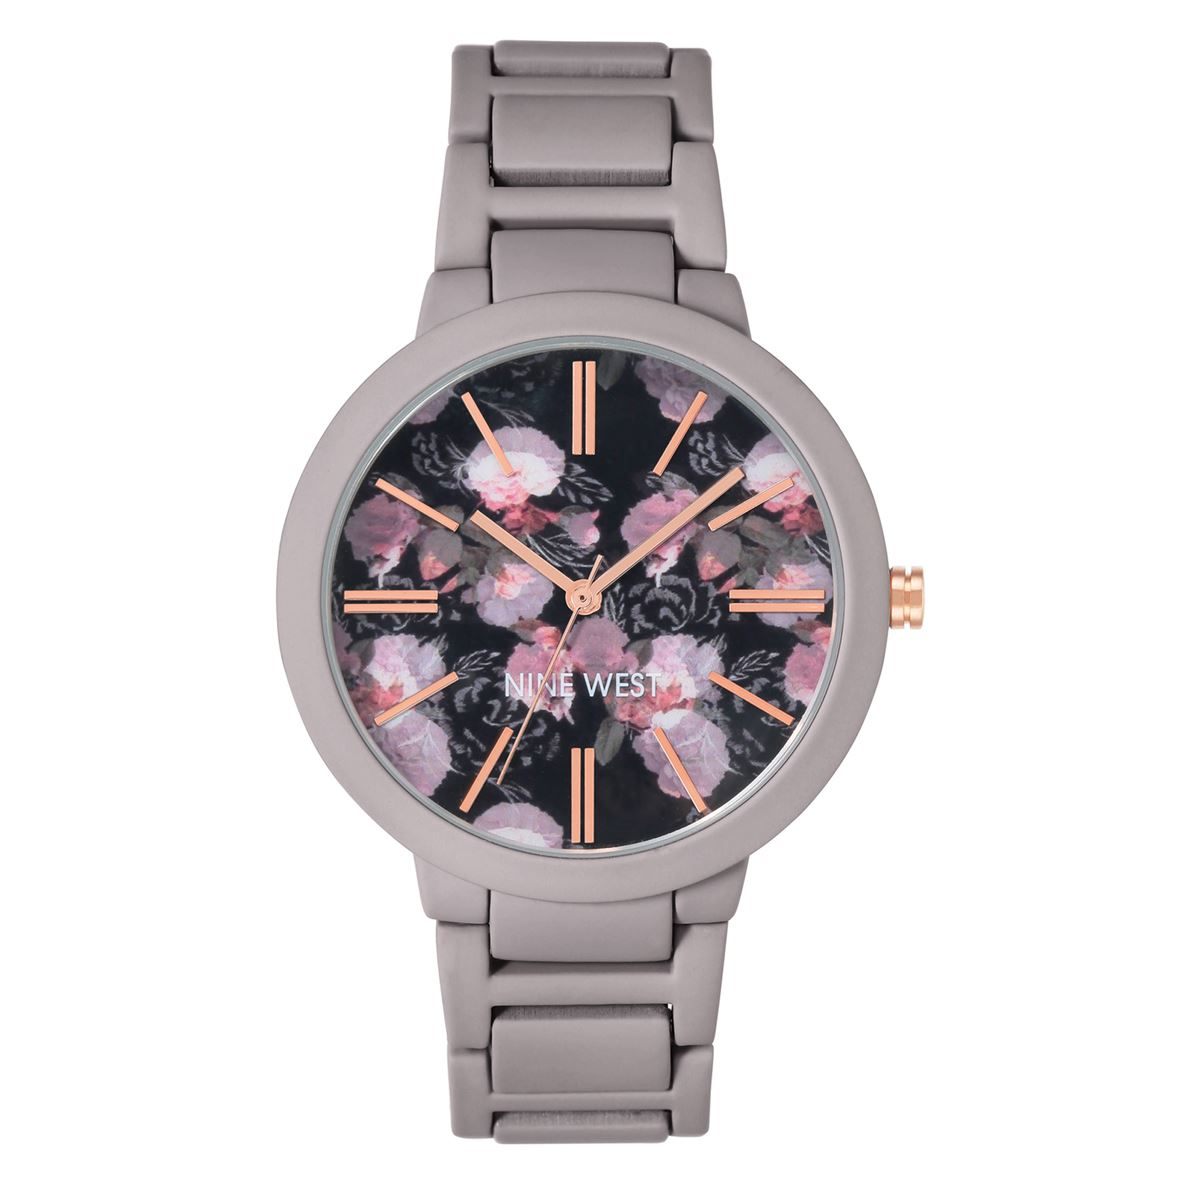 Reloj Nine West Dama NW2096BKGY